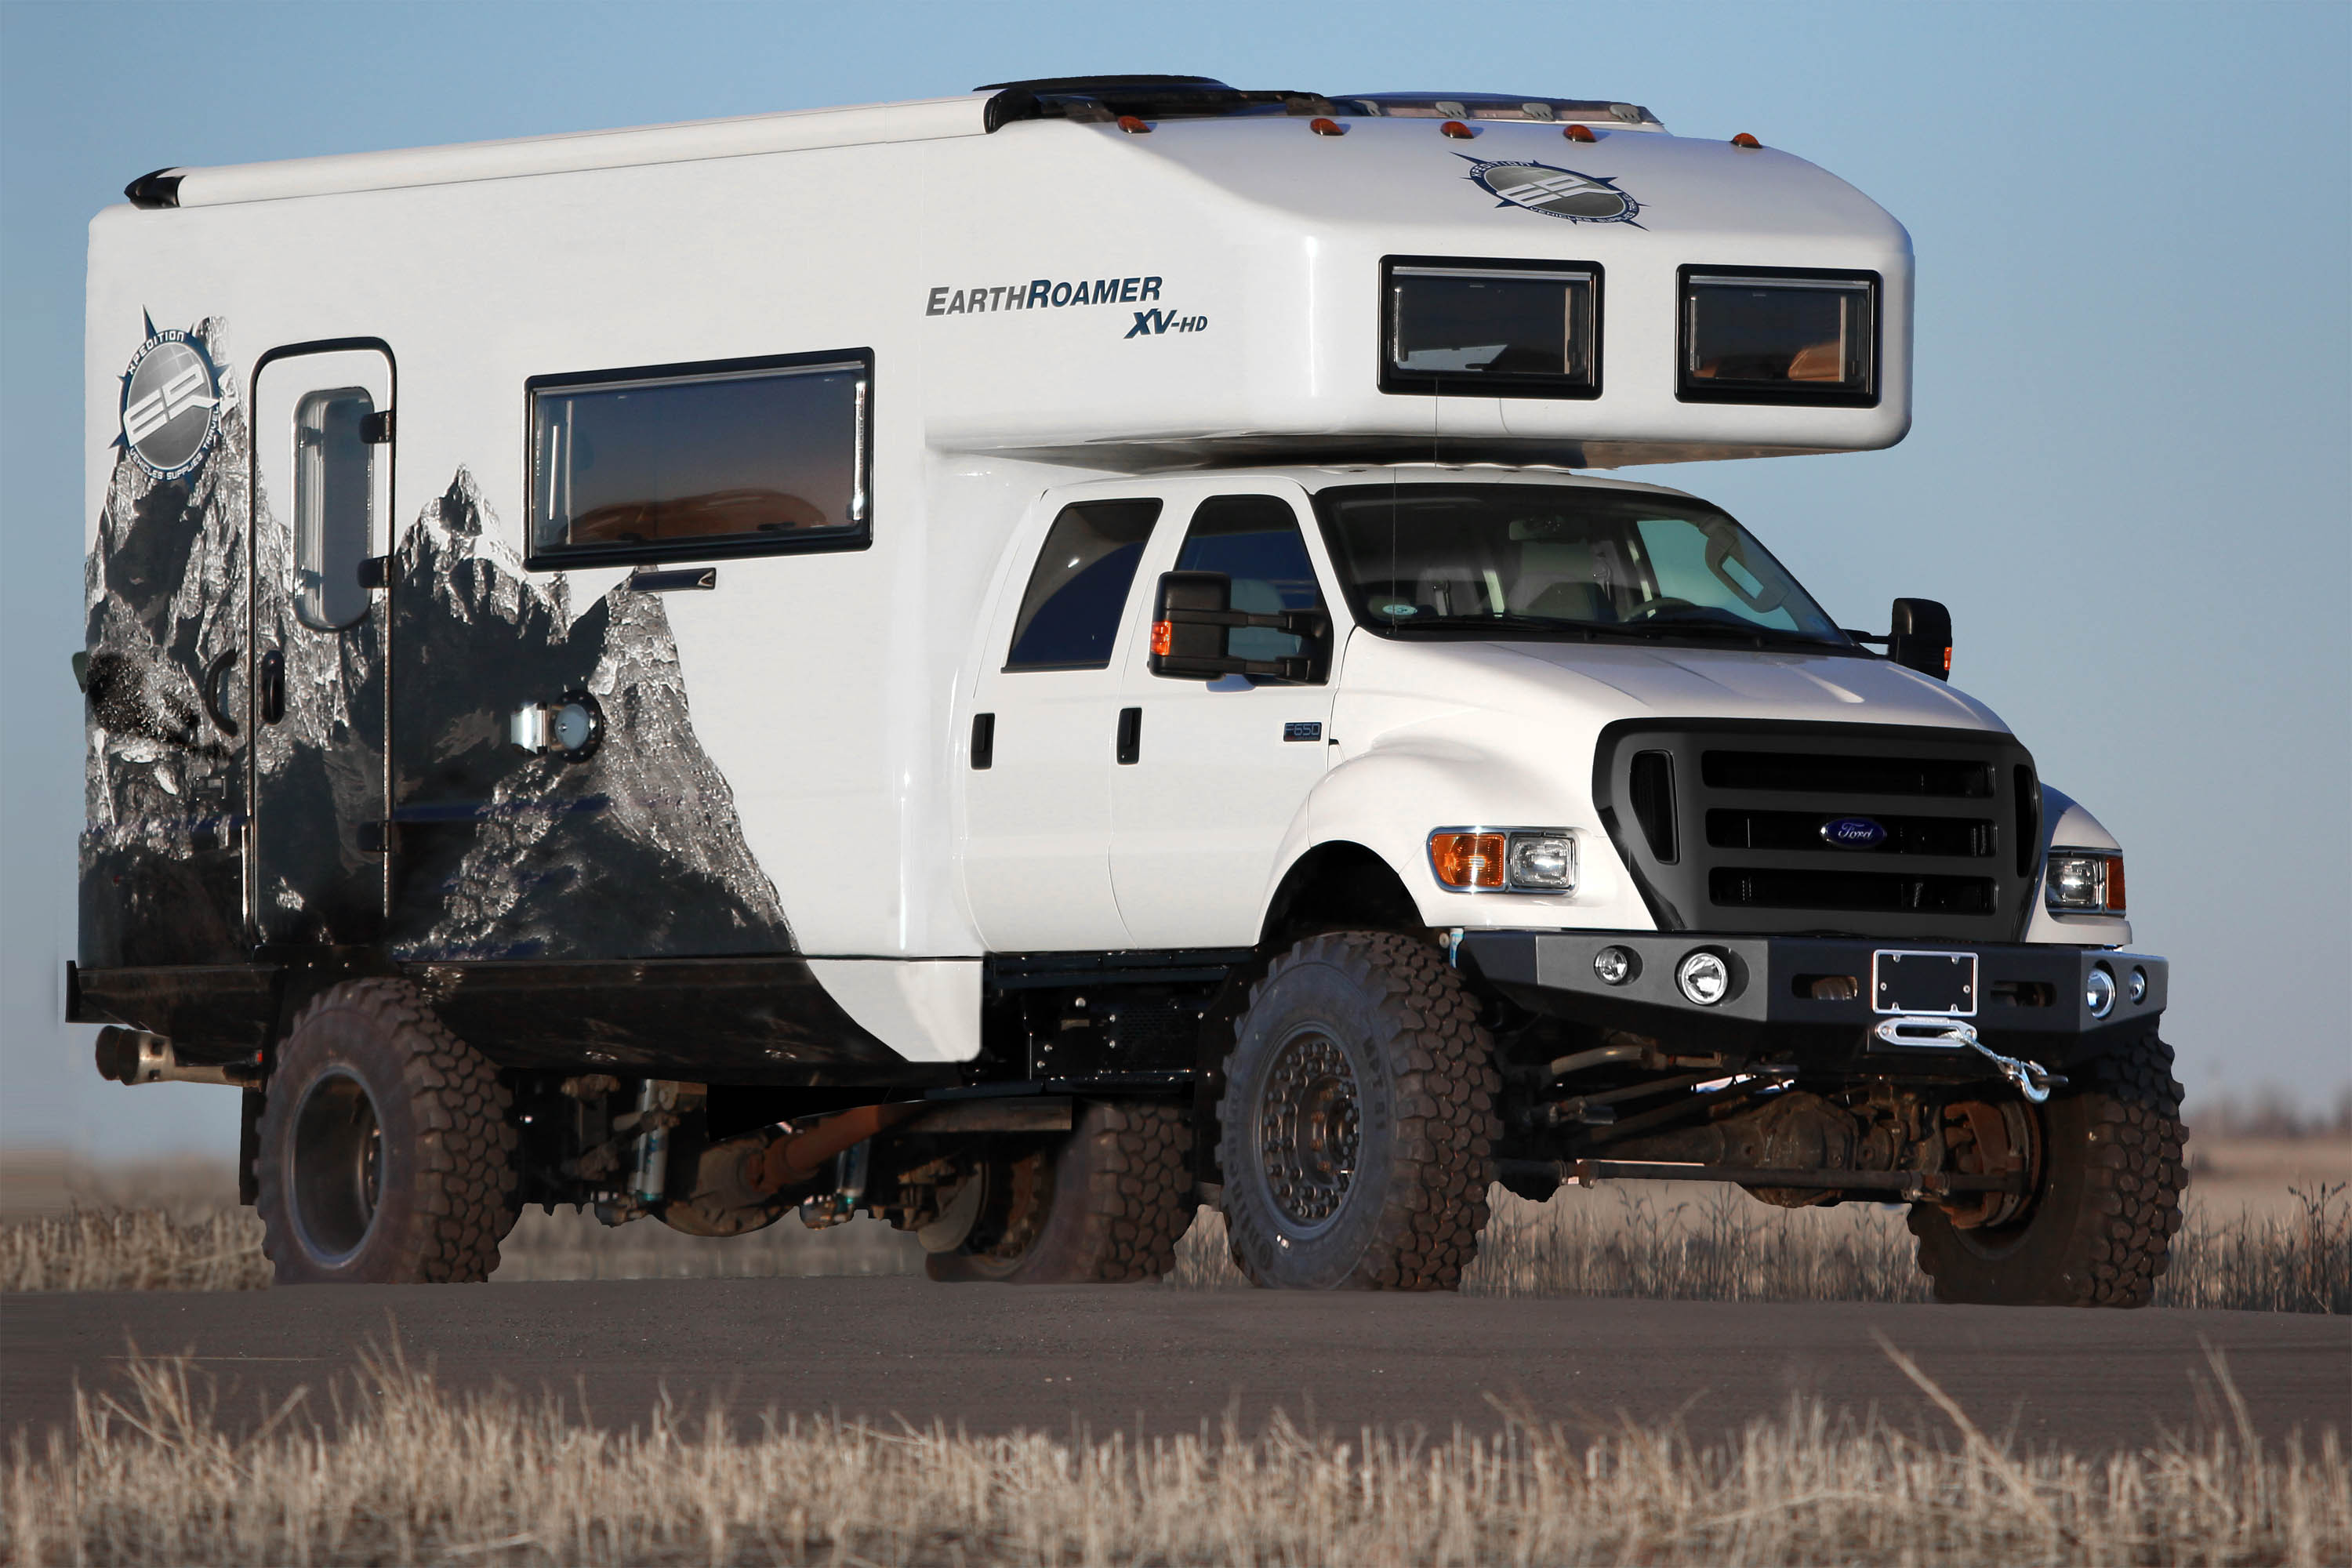 EarthRoamer XV-HD – survival vehicle